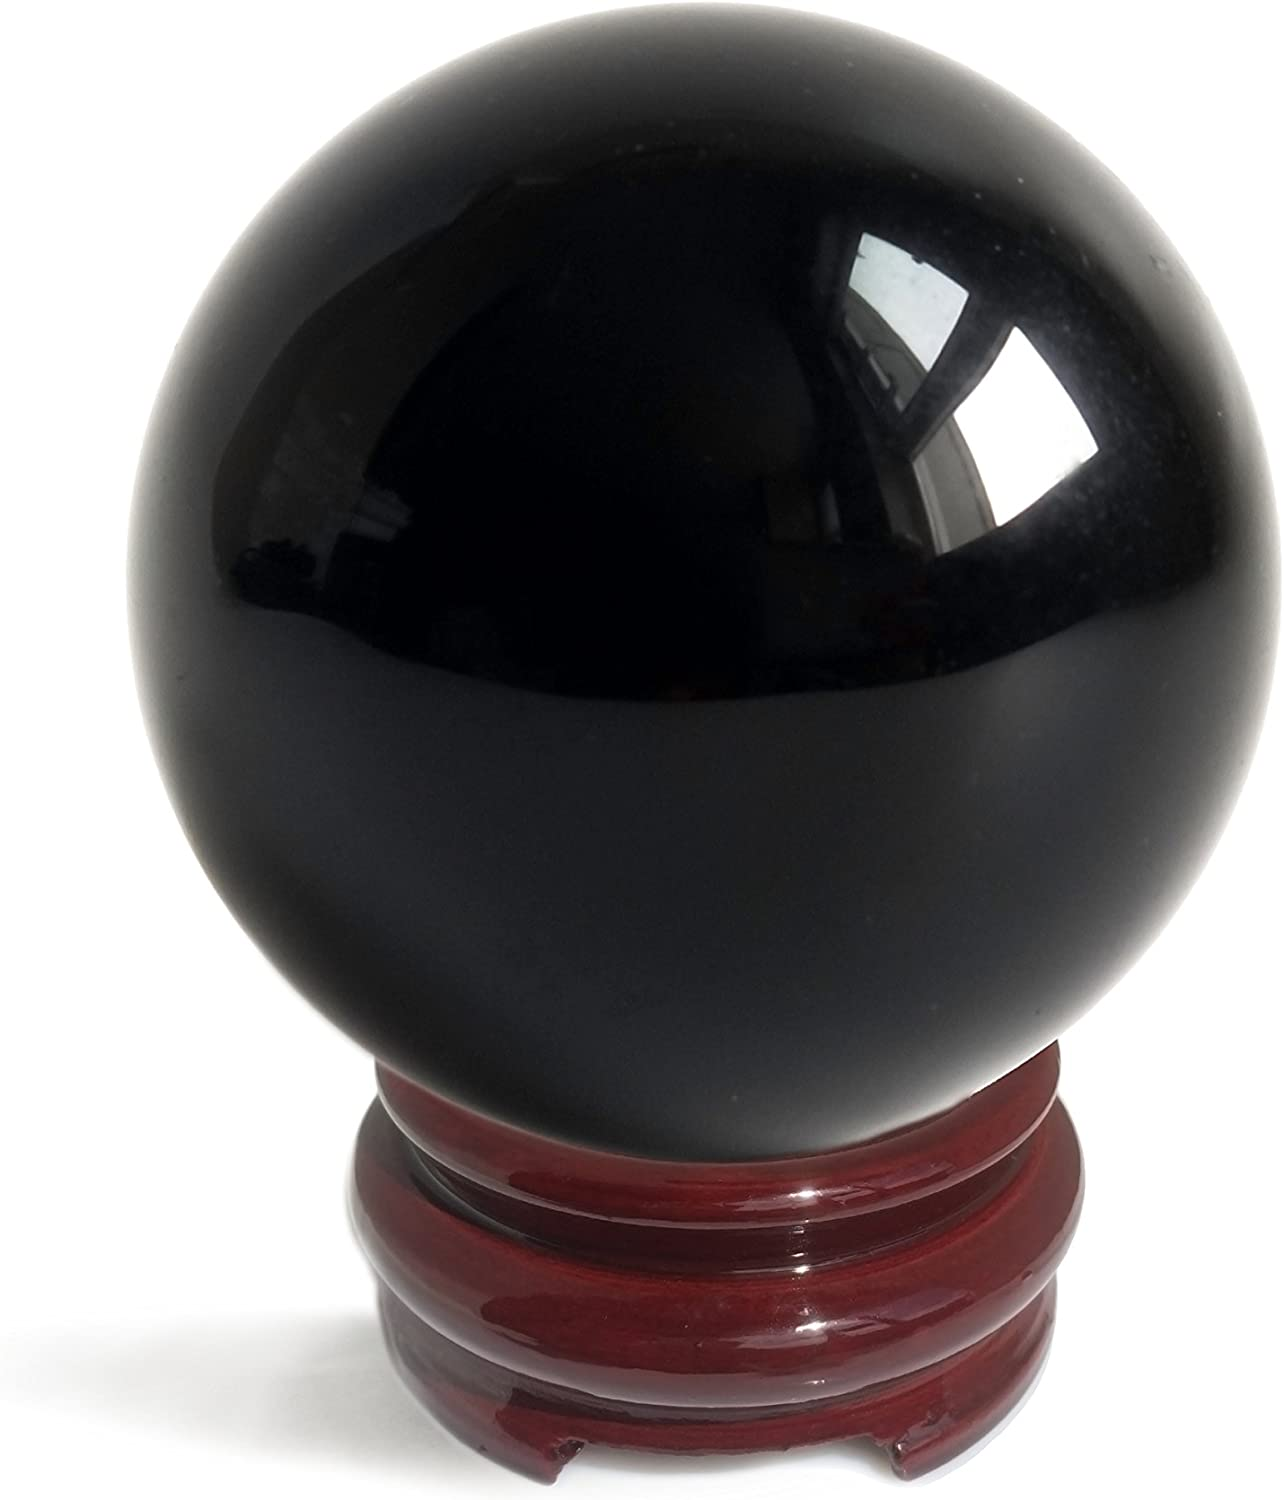 Mina Heal Obsidian Crystal Ball 110 mm   4.3  for Fengshui Ball, Scrying Meditation, Crystal Healing, Divination Sphere, Home Decoration, 100% Natural and Genuine